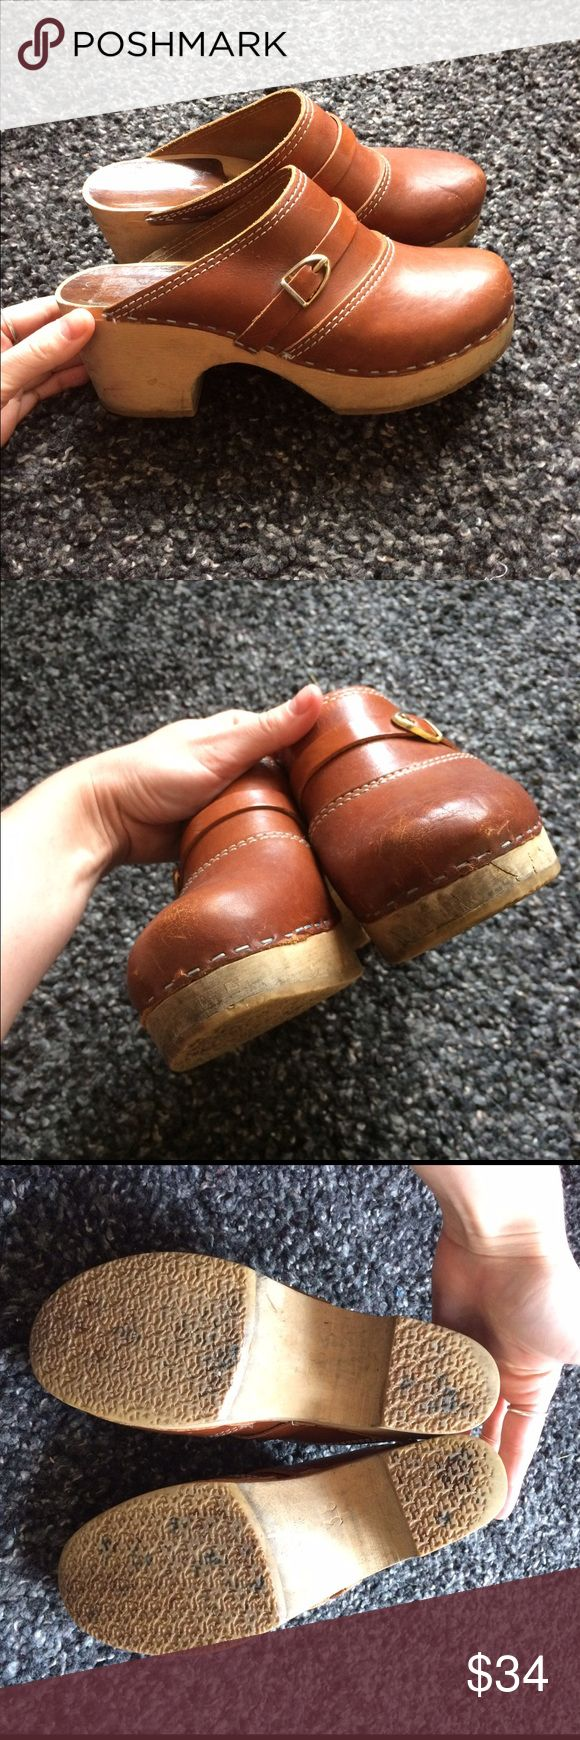 vintage cognac leather heeled clogs Very, very cool authentic vintage wooden clogs. Cognac leather, small gold buckles. Brand name has worn off, but were made in Sweden. Decent amount of wear--some scuffing to the leather toes, and some scrapes and discoloration to the wood sole. Very little wear to the rubber soles. Overall very sturdy, and will last for years more. Sized 38 but fits a modern 6.5/7. Not FP--just using for exposure! Free People Shoes Mules & Clogs